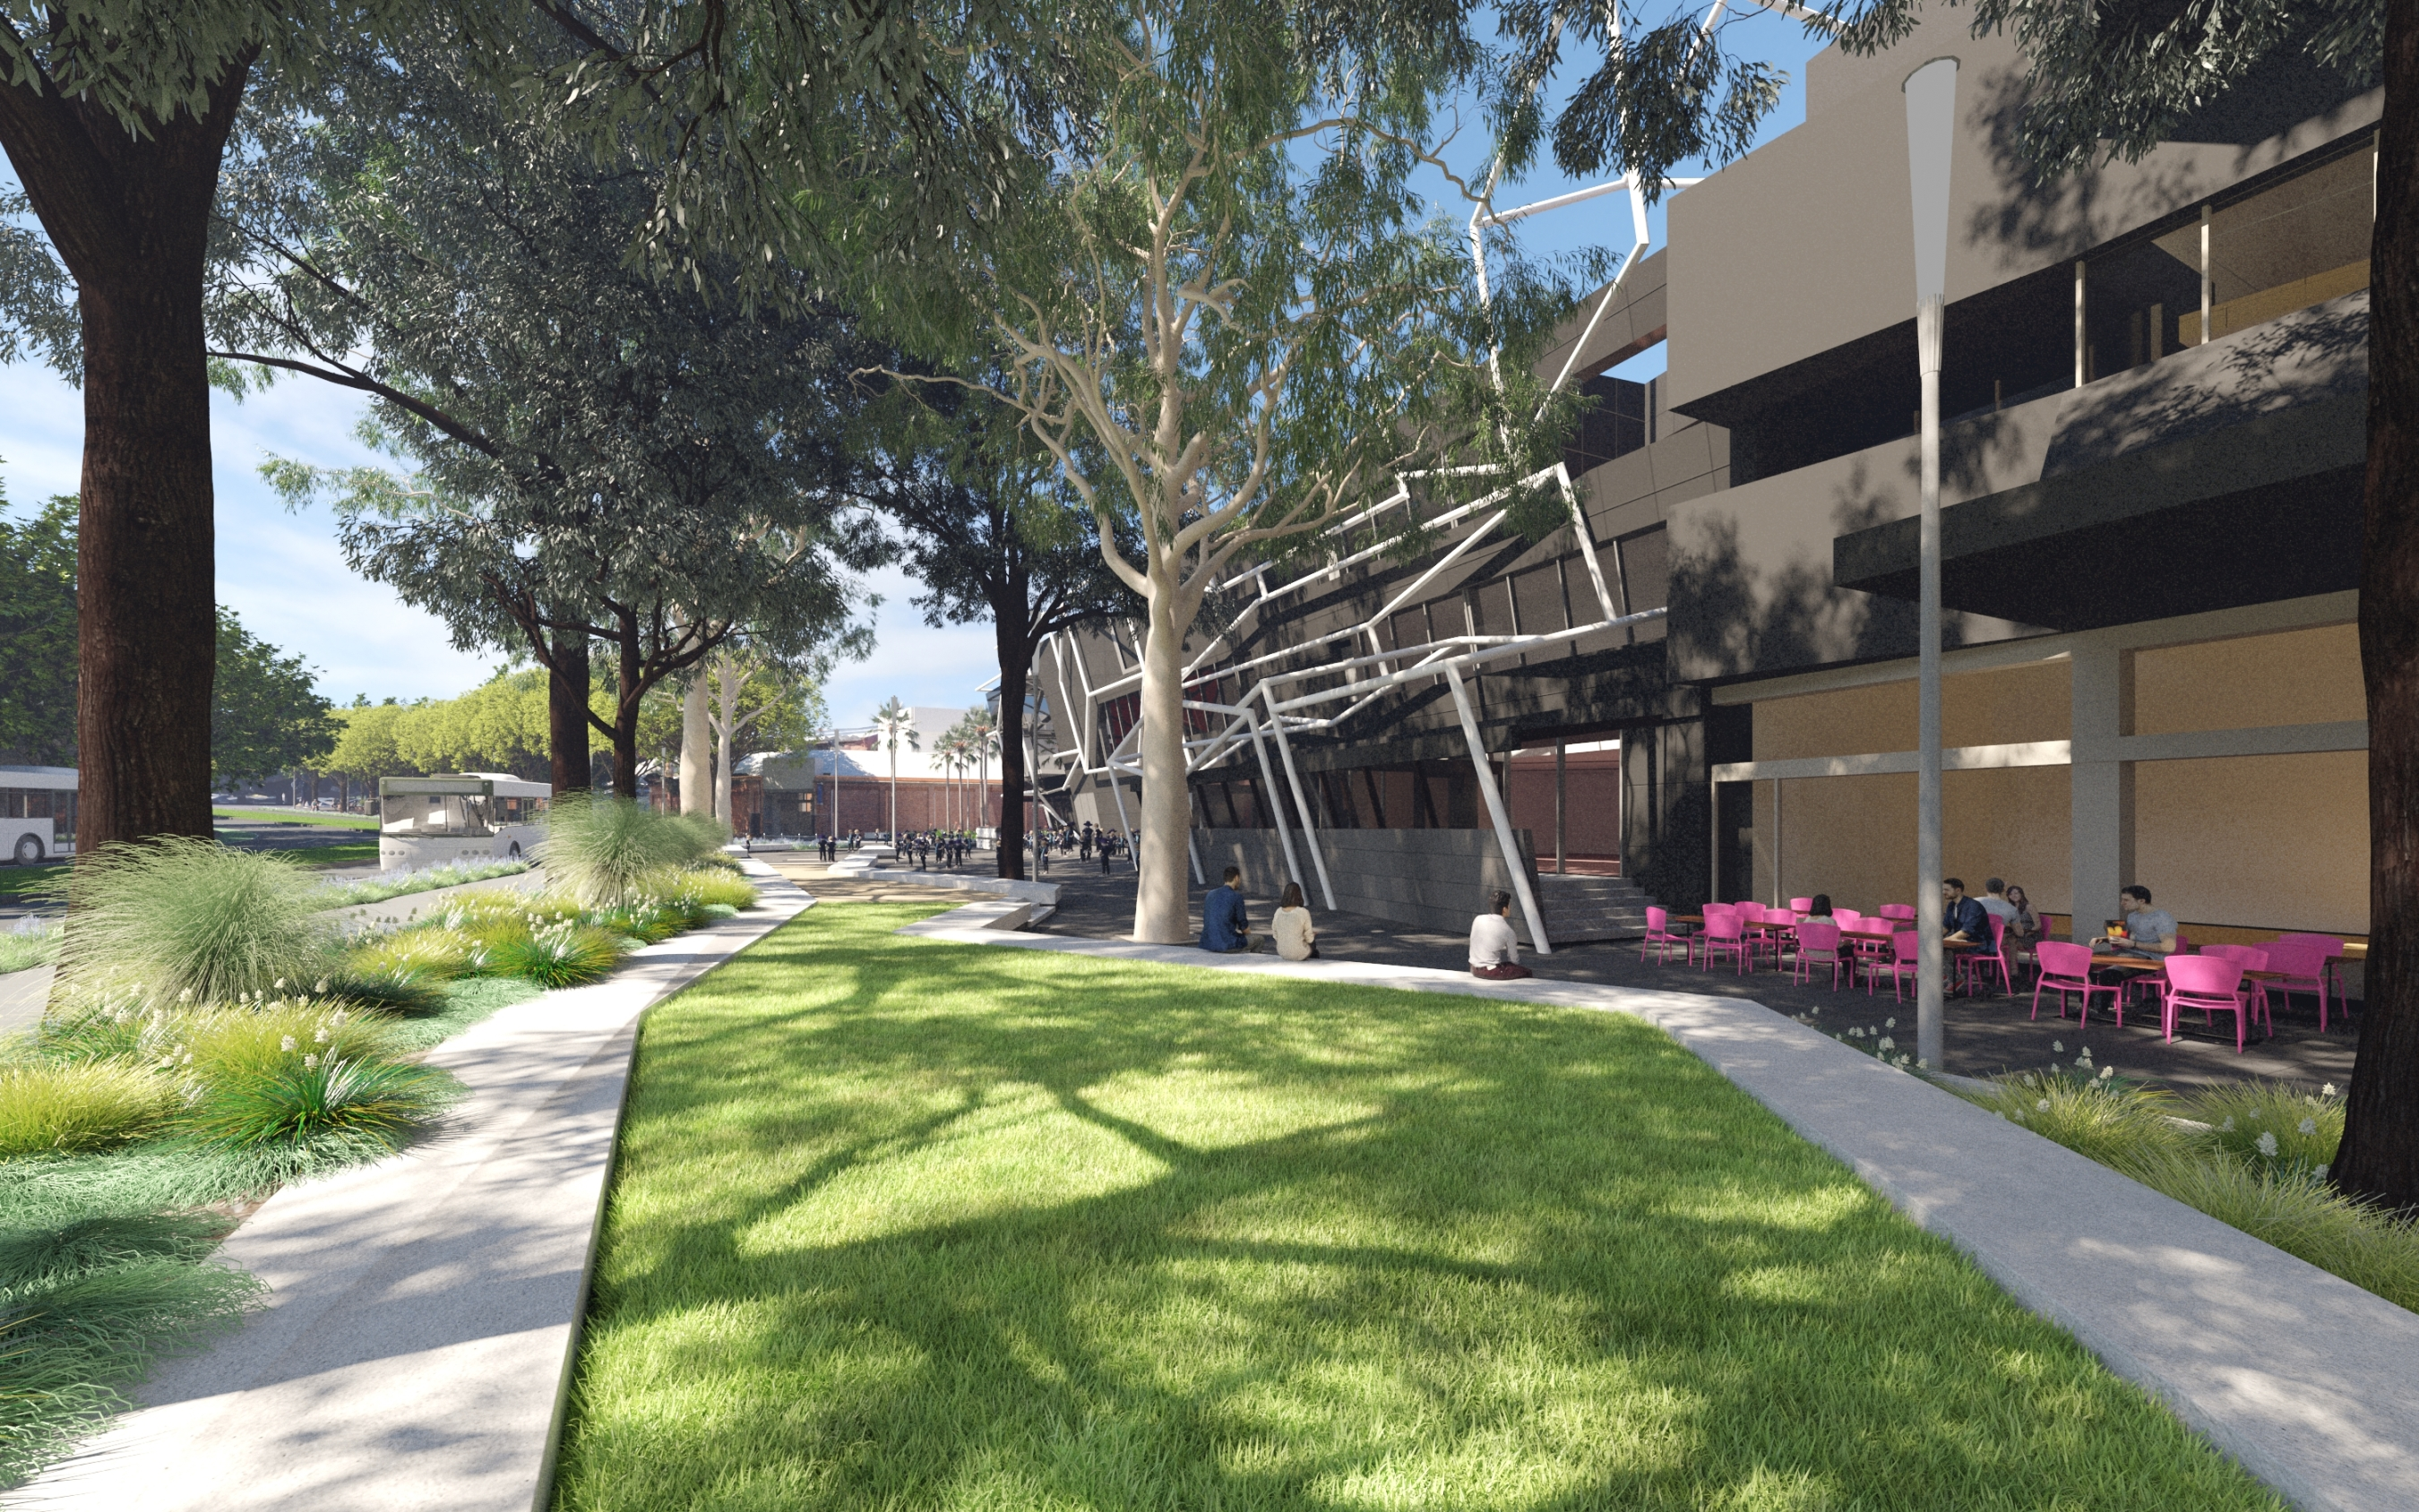 New public open space and trees from Sturt Street to St Kilda Road MTC MRC